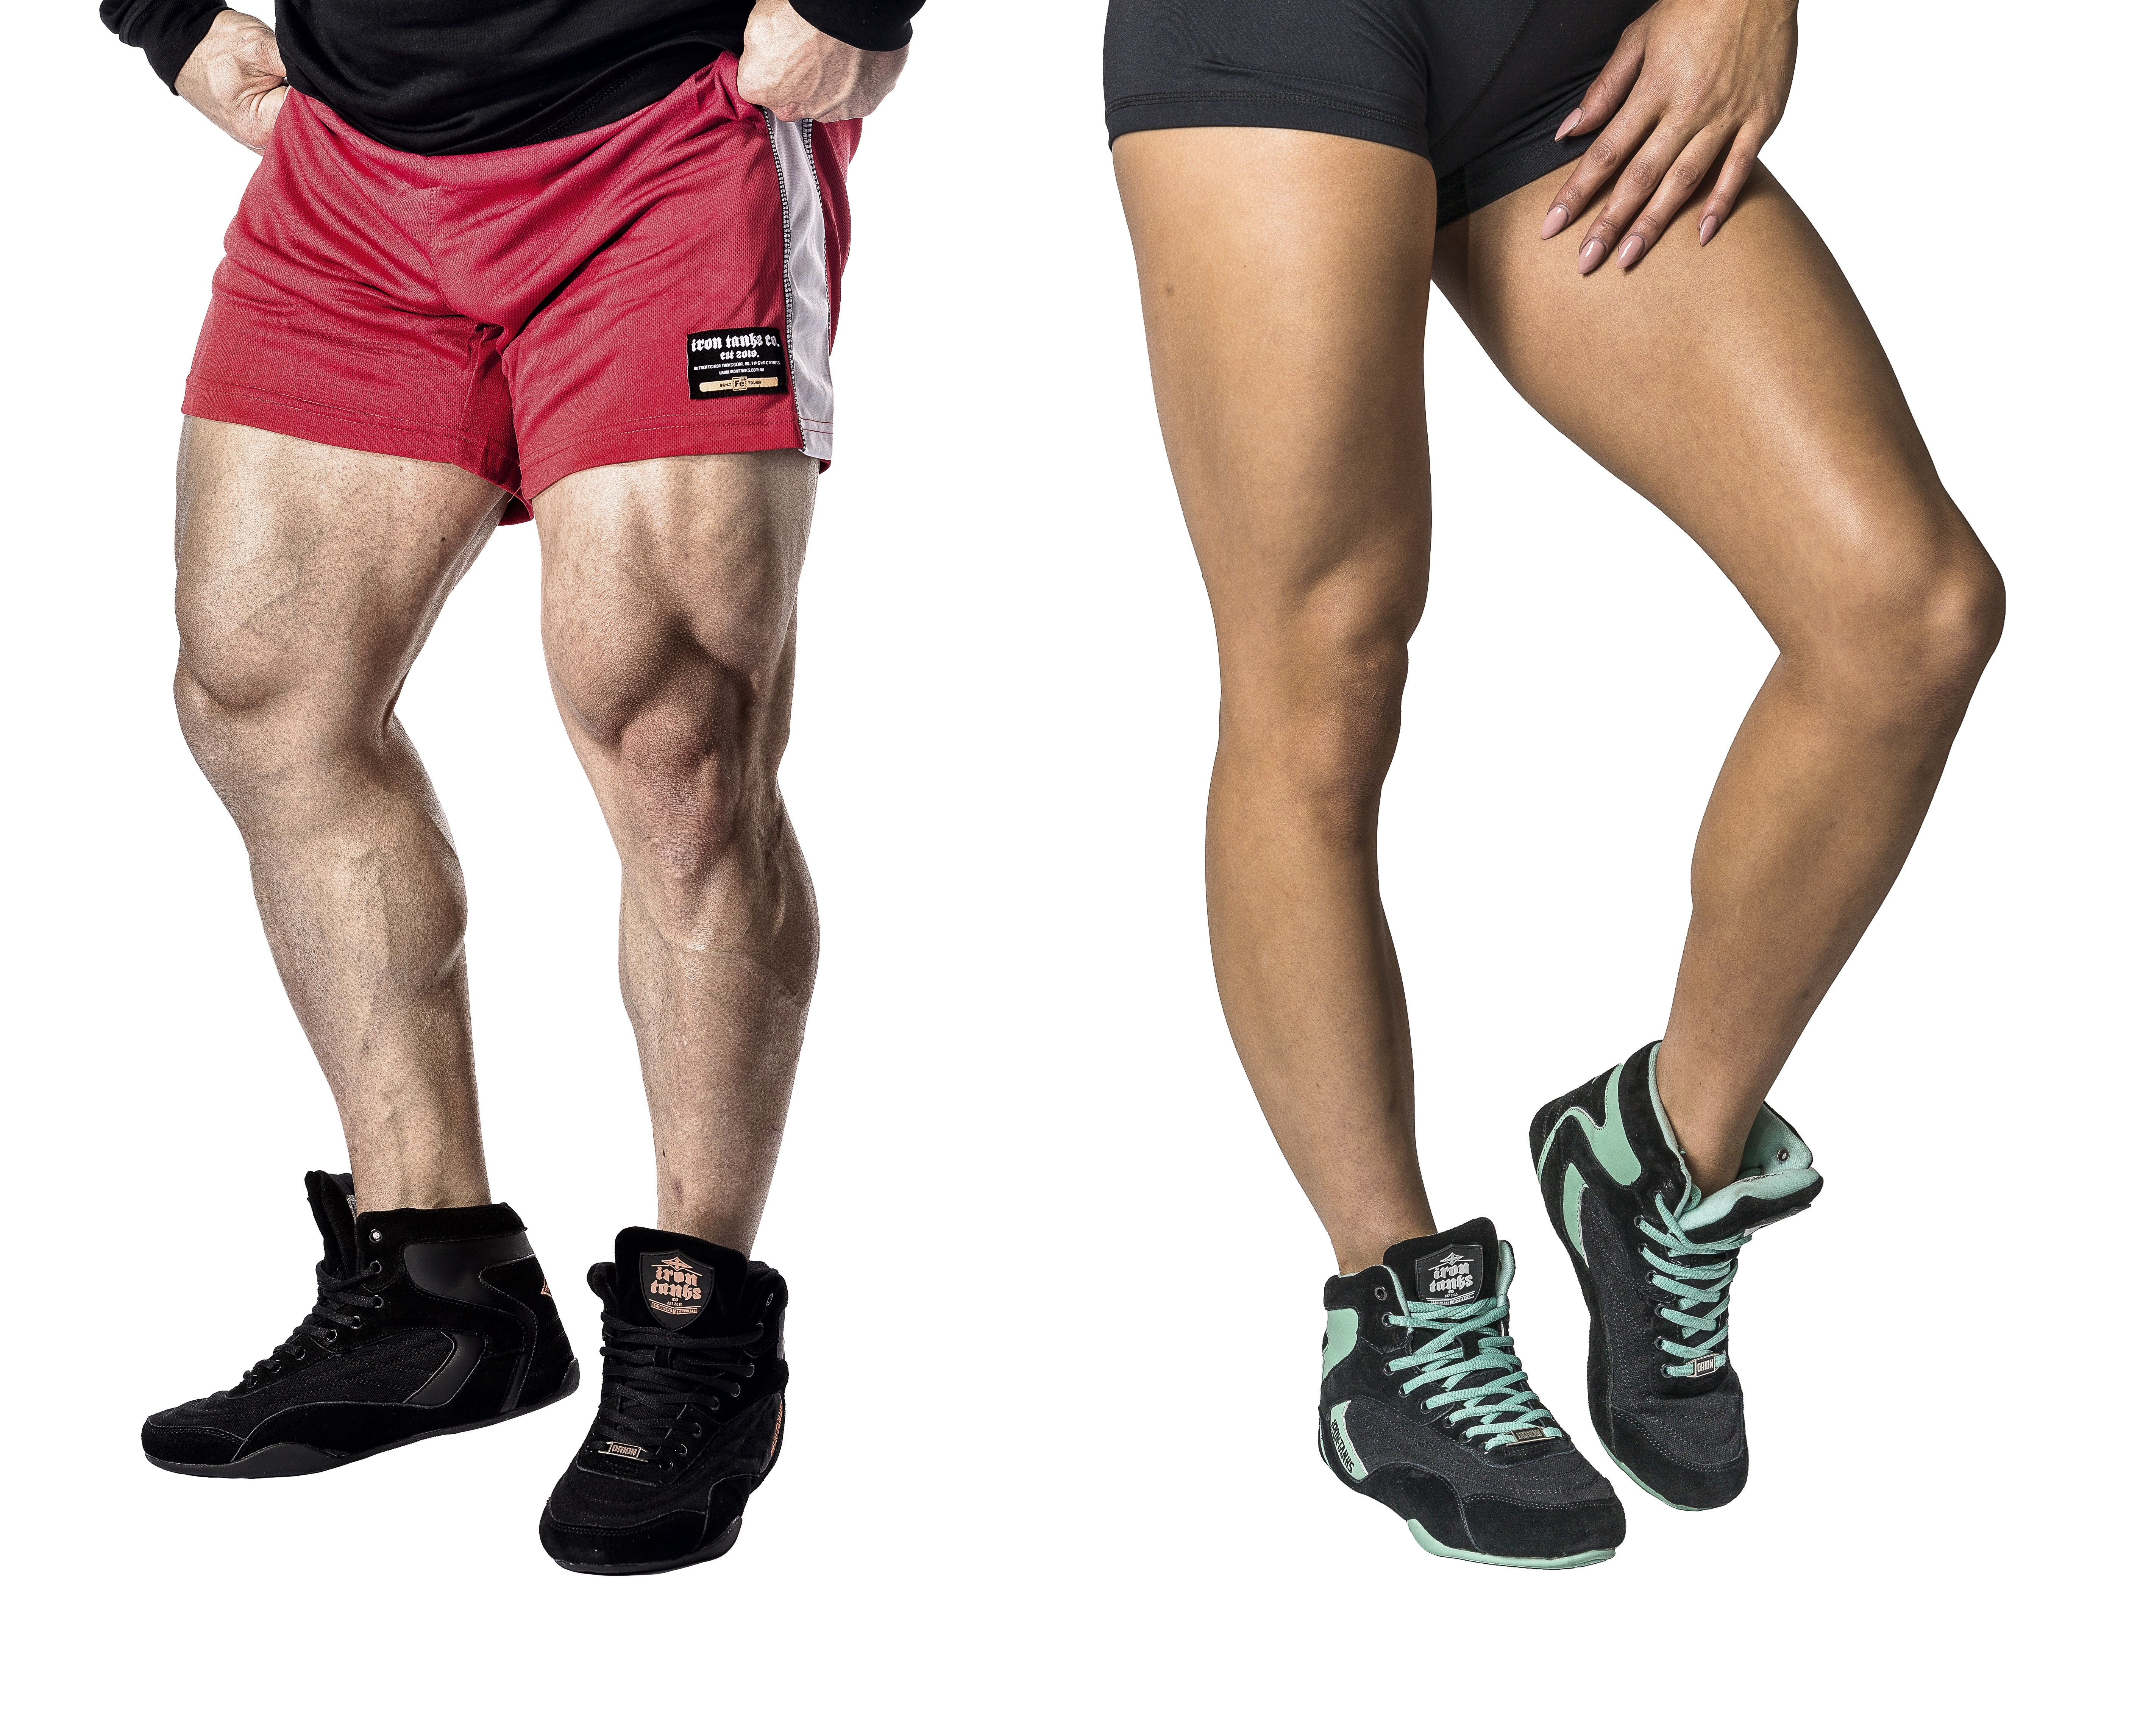 Quadgoals Step Foot Into Our Gym Shoes To Bolster Your Leg Day Workouts Jacob Spiteri Ft Michelle Kimberlee Repre Gym Gear Leg Day Workouts Gym Outfit